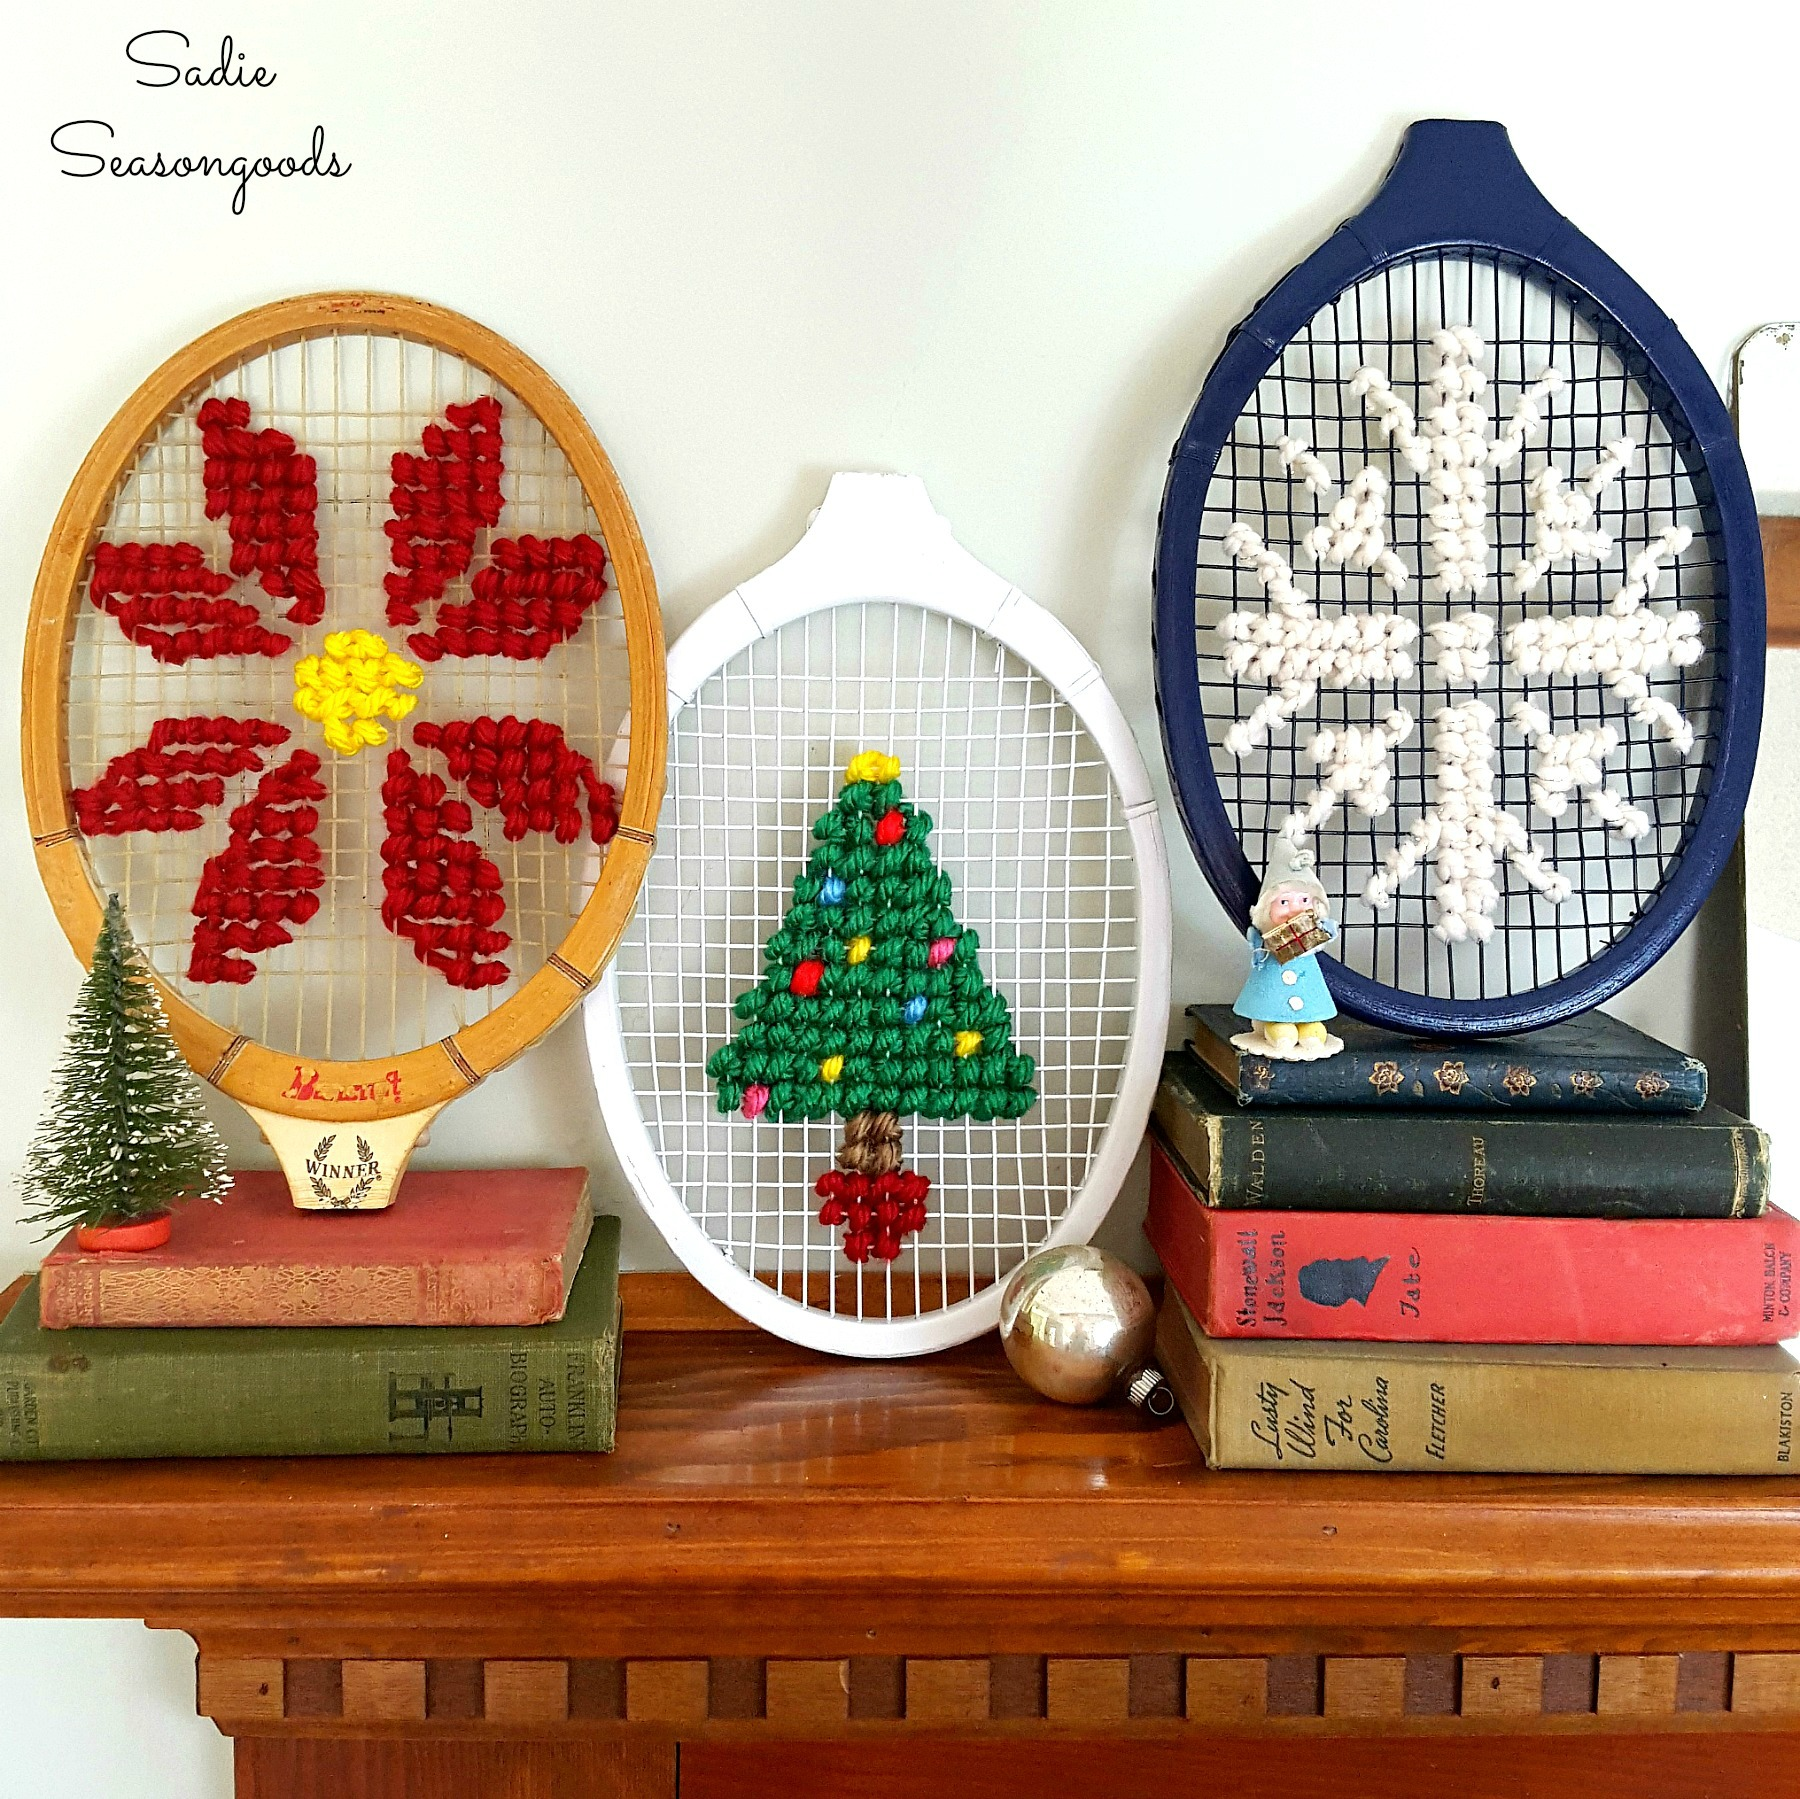 Oversized_Christmas_Cross_Stitch_on_Vintage_Wooden_Tennis_Racket_Racquet_by_Sadie_Seasongoods